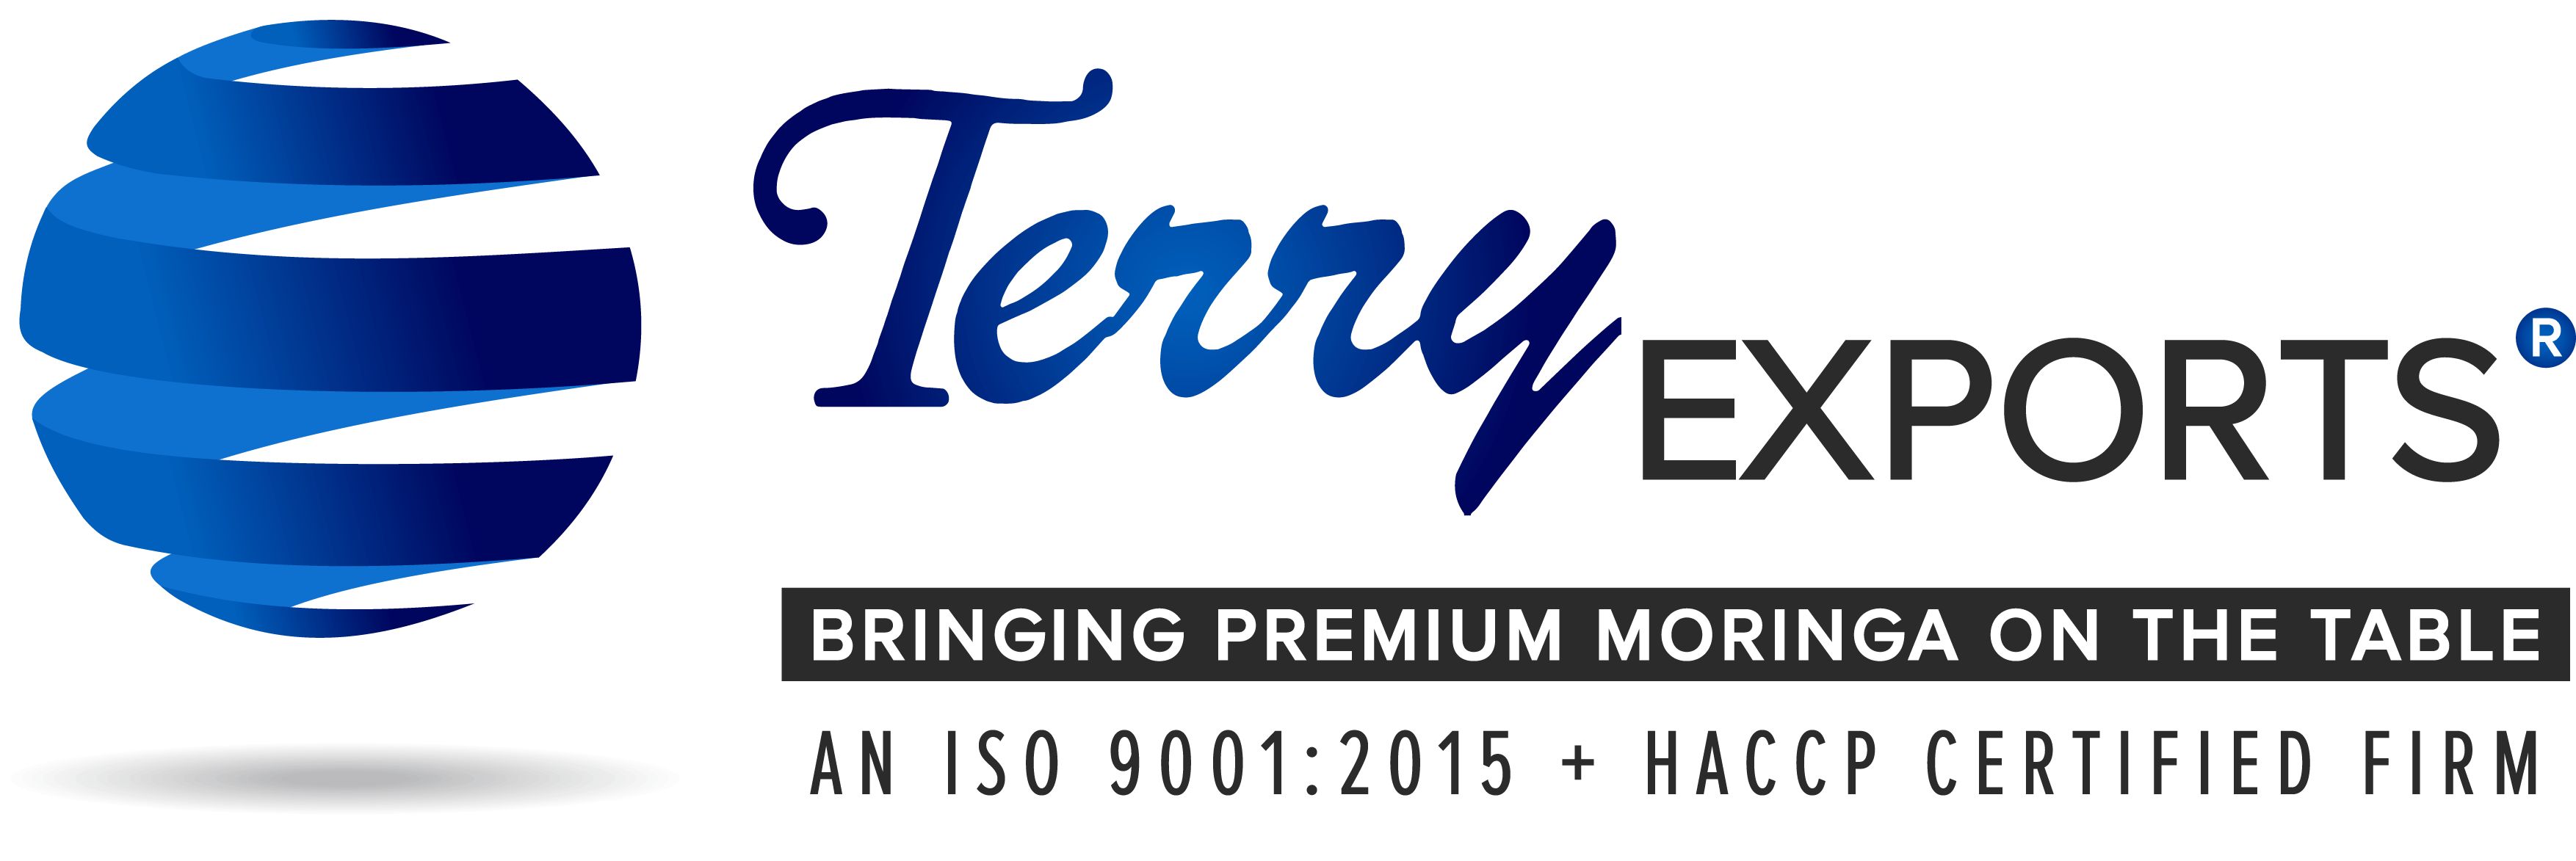 Terry Exports